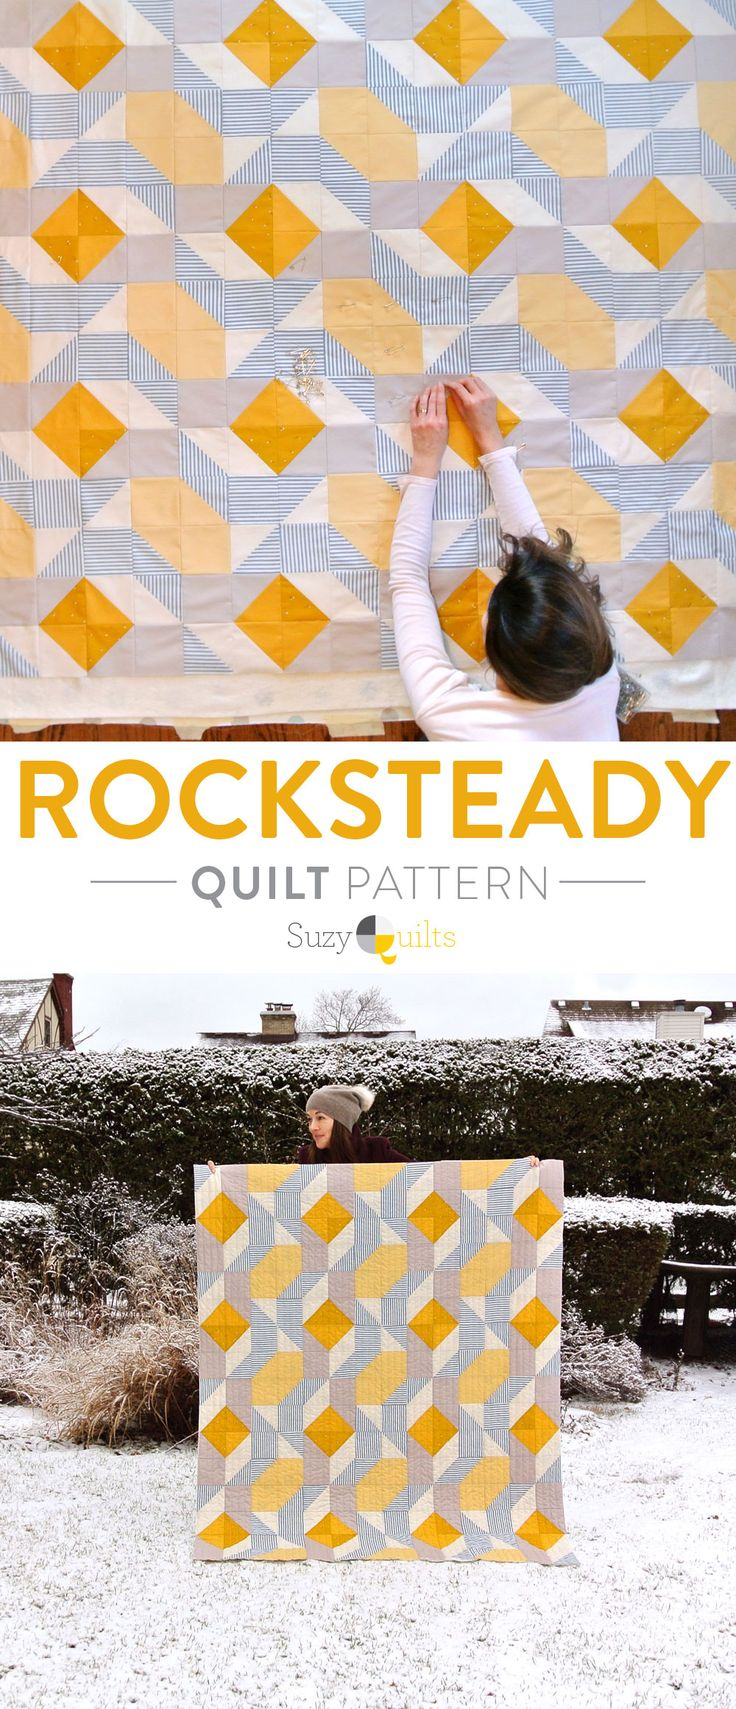 Best 25 quilted gifts ideas on pinterest baby quilt patterns rocksteady quilt pattern negle Gallery